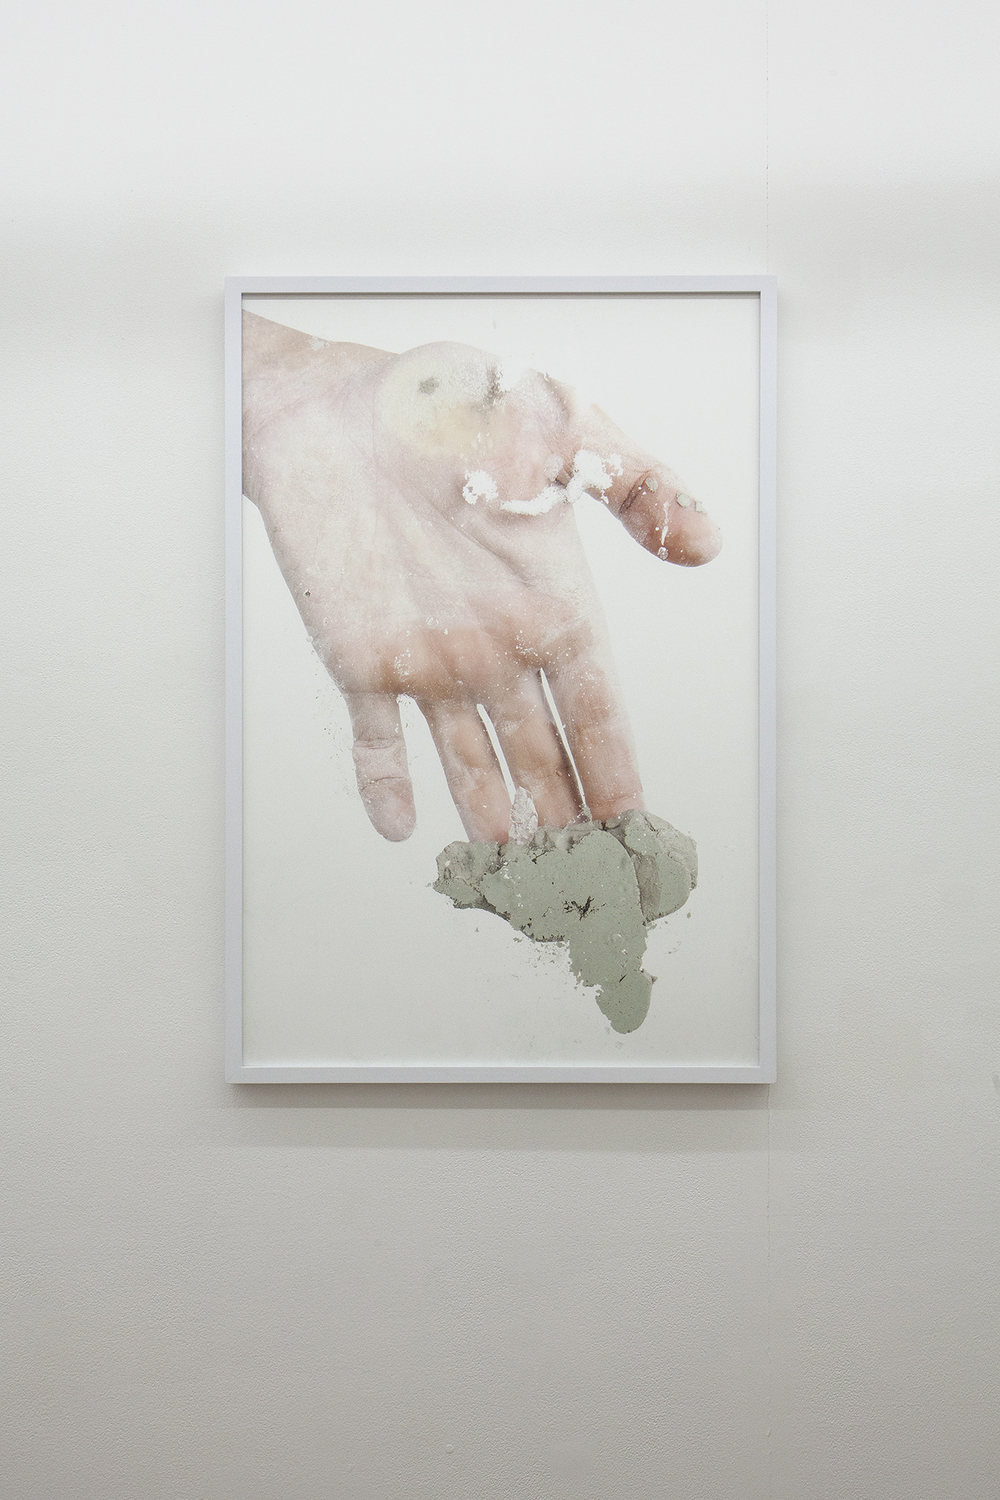 Human Hand Pressing Clay on Glass   2015  Archival inkjet print on Hahnemuhle photo rag paper  36.5 x 25 in/ 93 x 64 cm  FRAMED